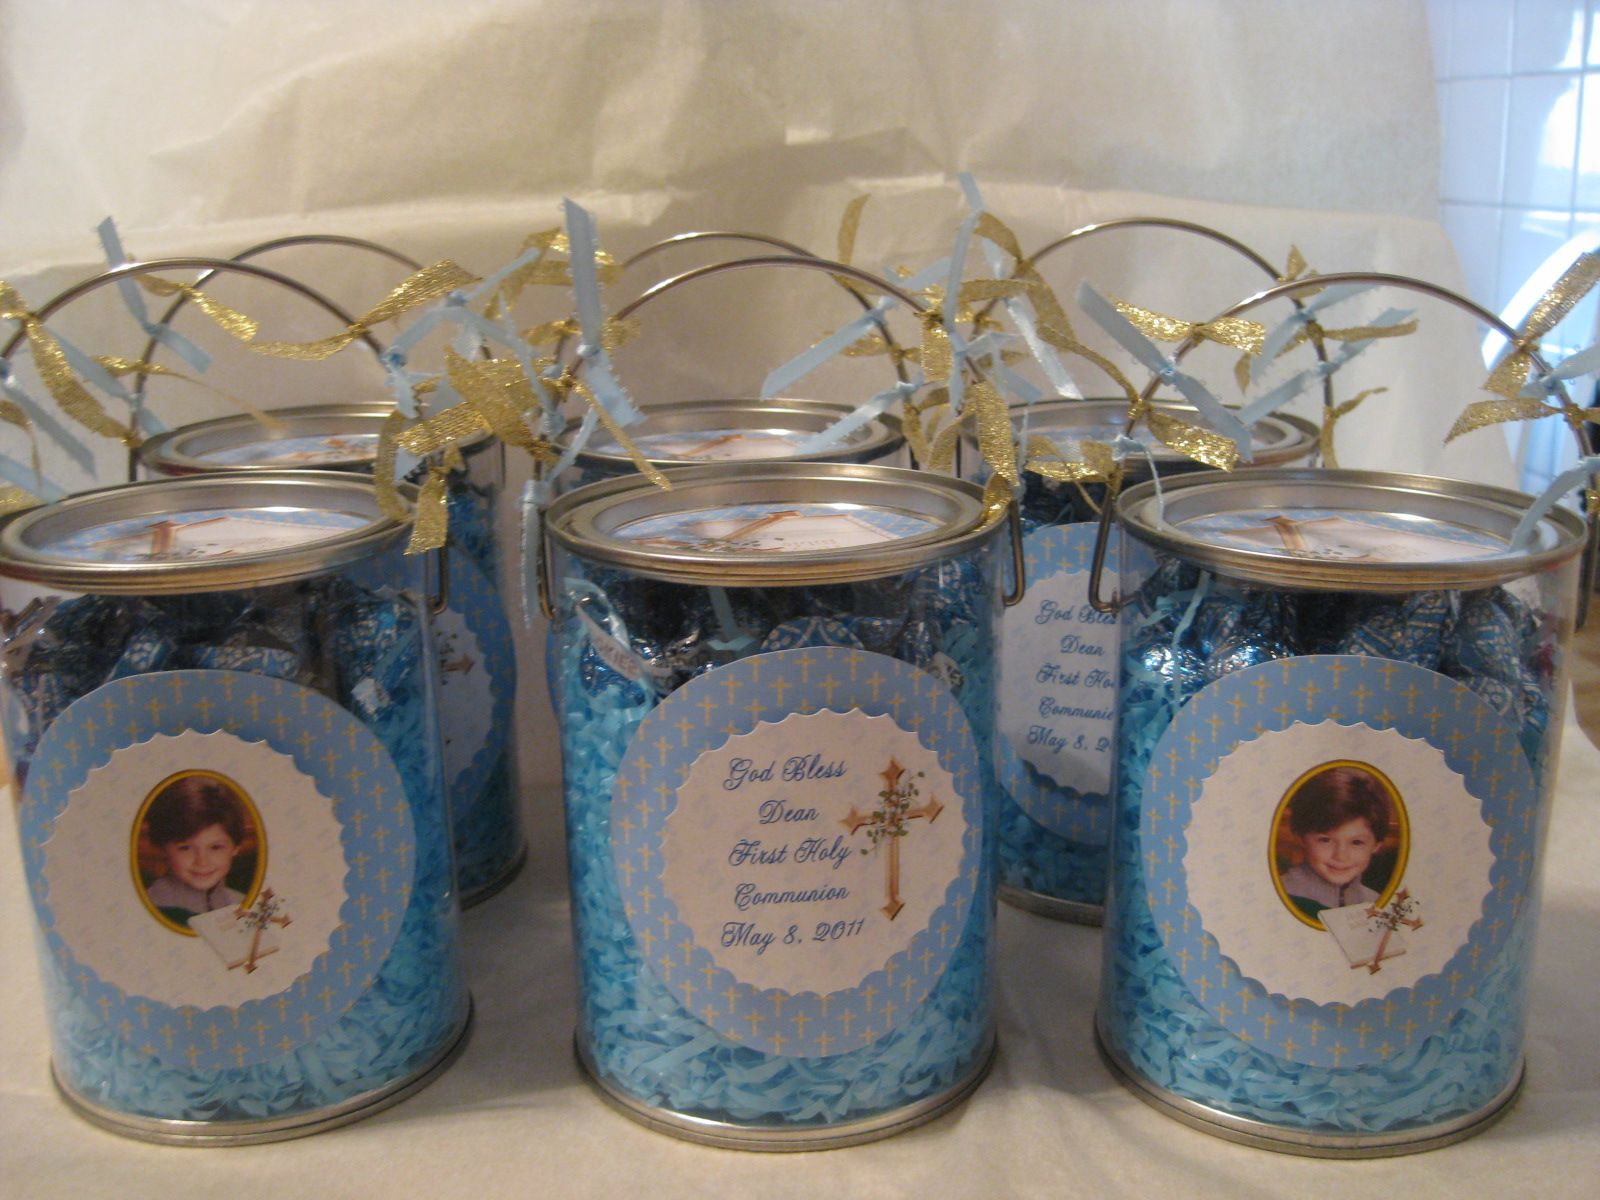 Cute idea for munion favors or centerpieces They could